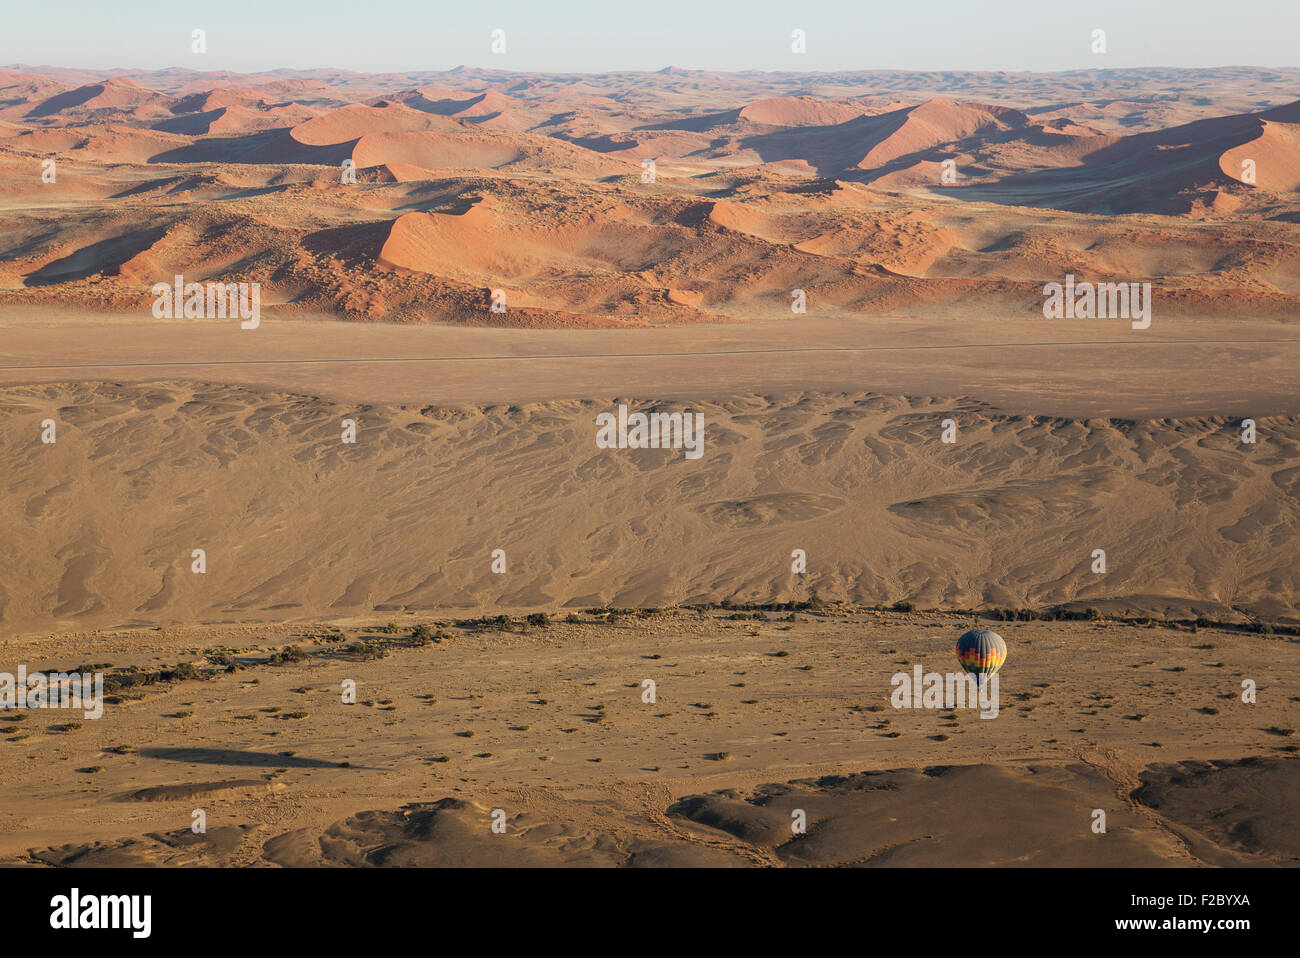 Hot-air balloon above an arid plain and the dry riverbed of the Tsauchab river at the edge of the Namib Desert, - Stock Image